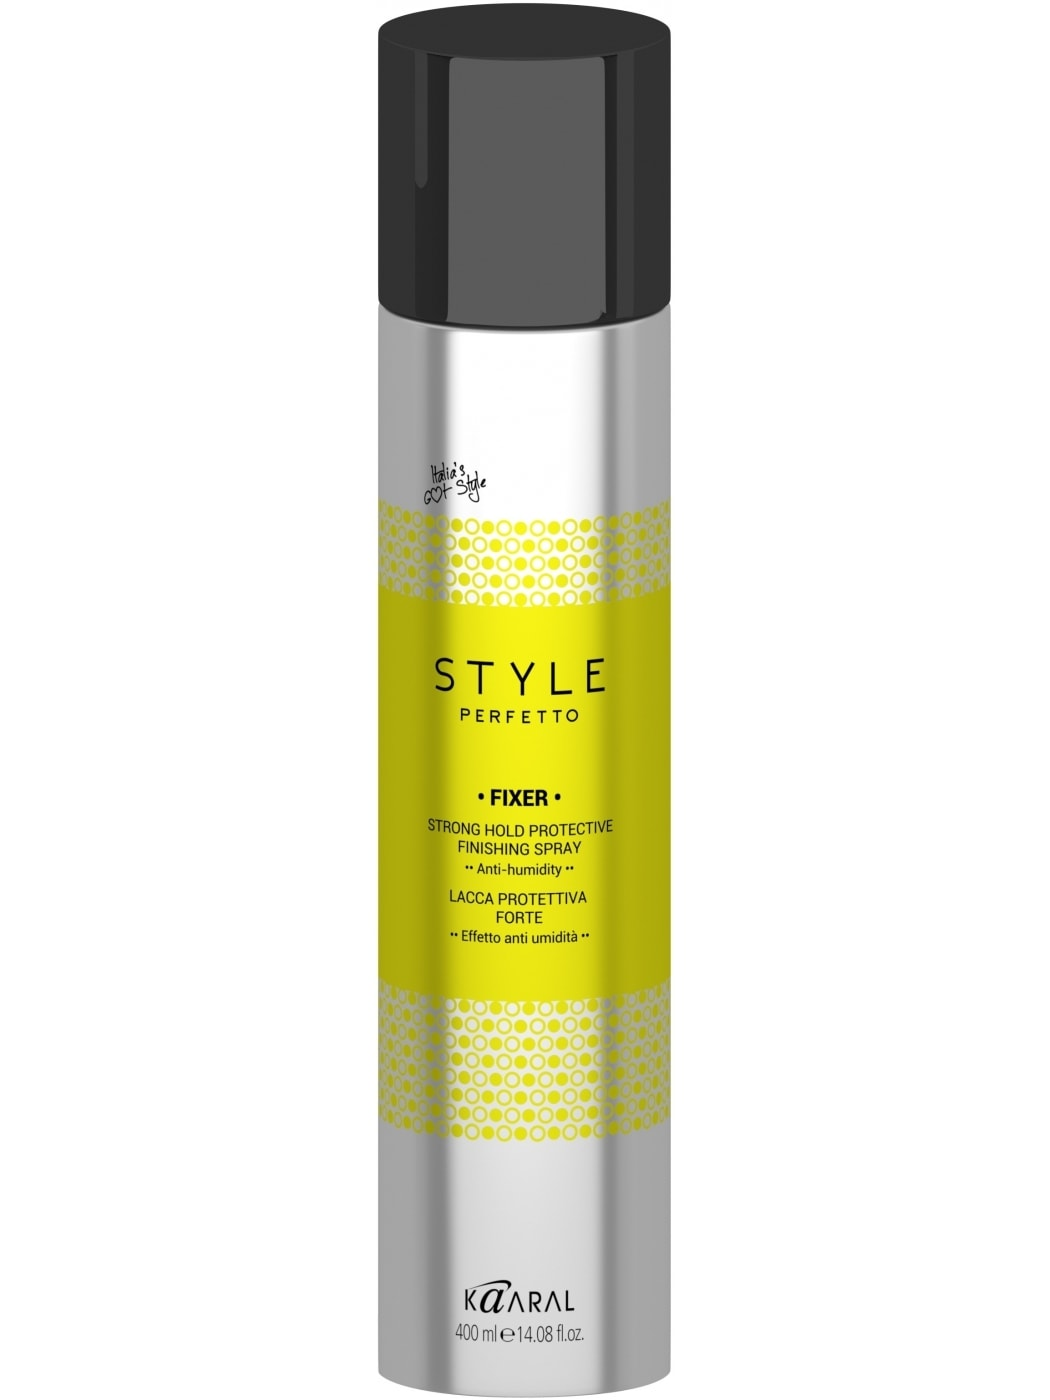 Kaaral Защитный лак для волос сильной фиксации Style Perfetto Fixer Strong Hold Protective Finishing Spray, 400 мл kaaral лак без газа экстра фиксации style perfetto definer extra strong hold working no aerosol spray 350 мл